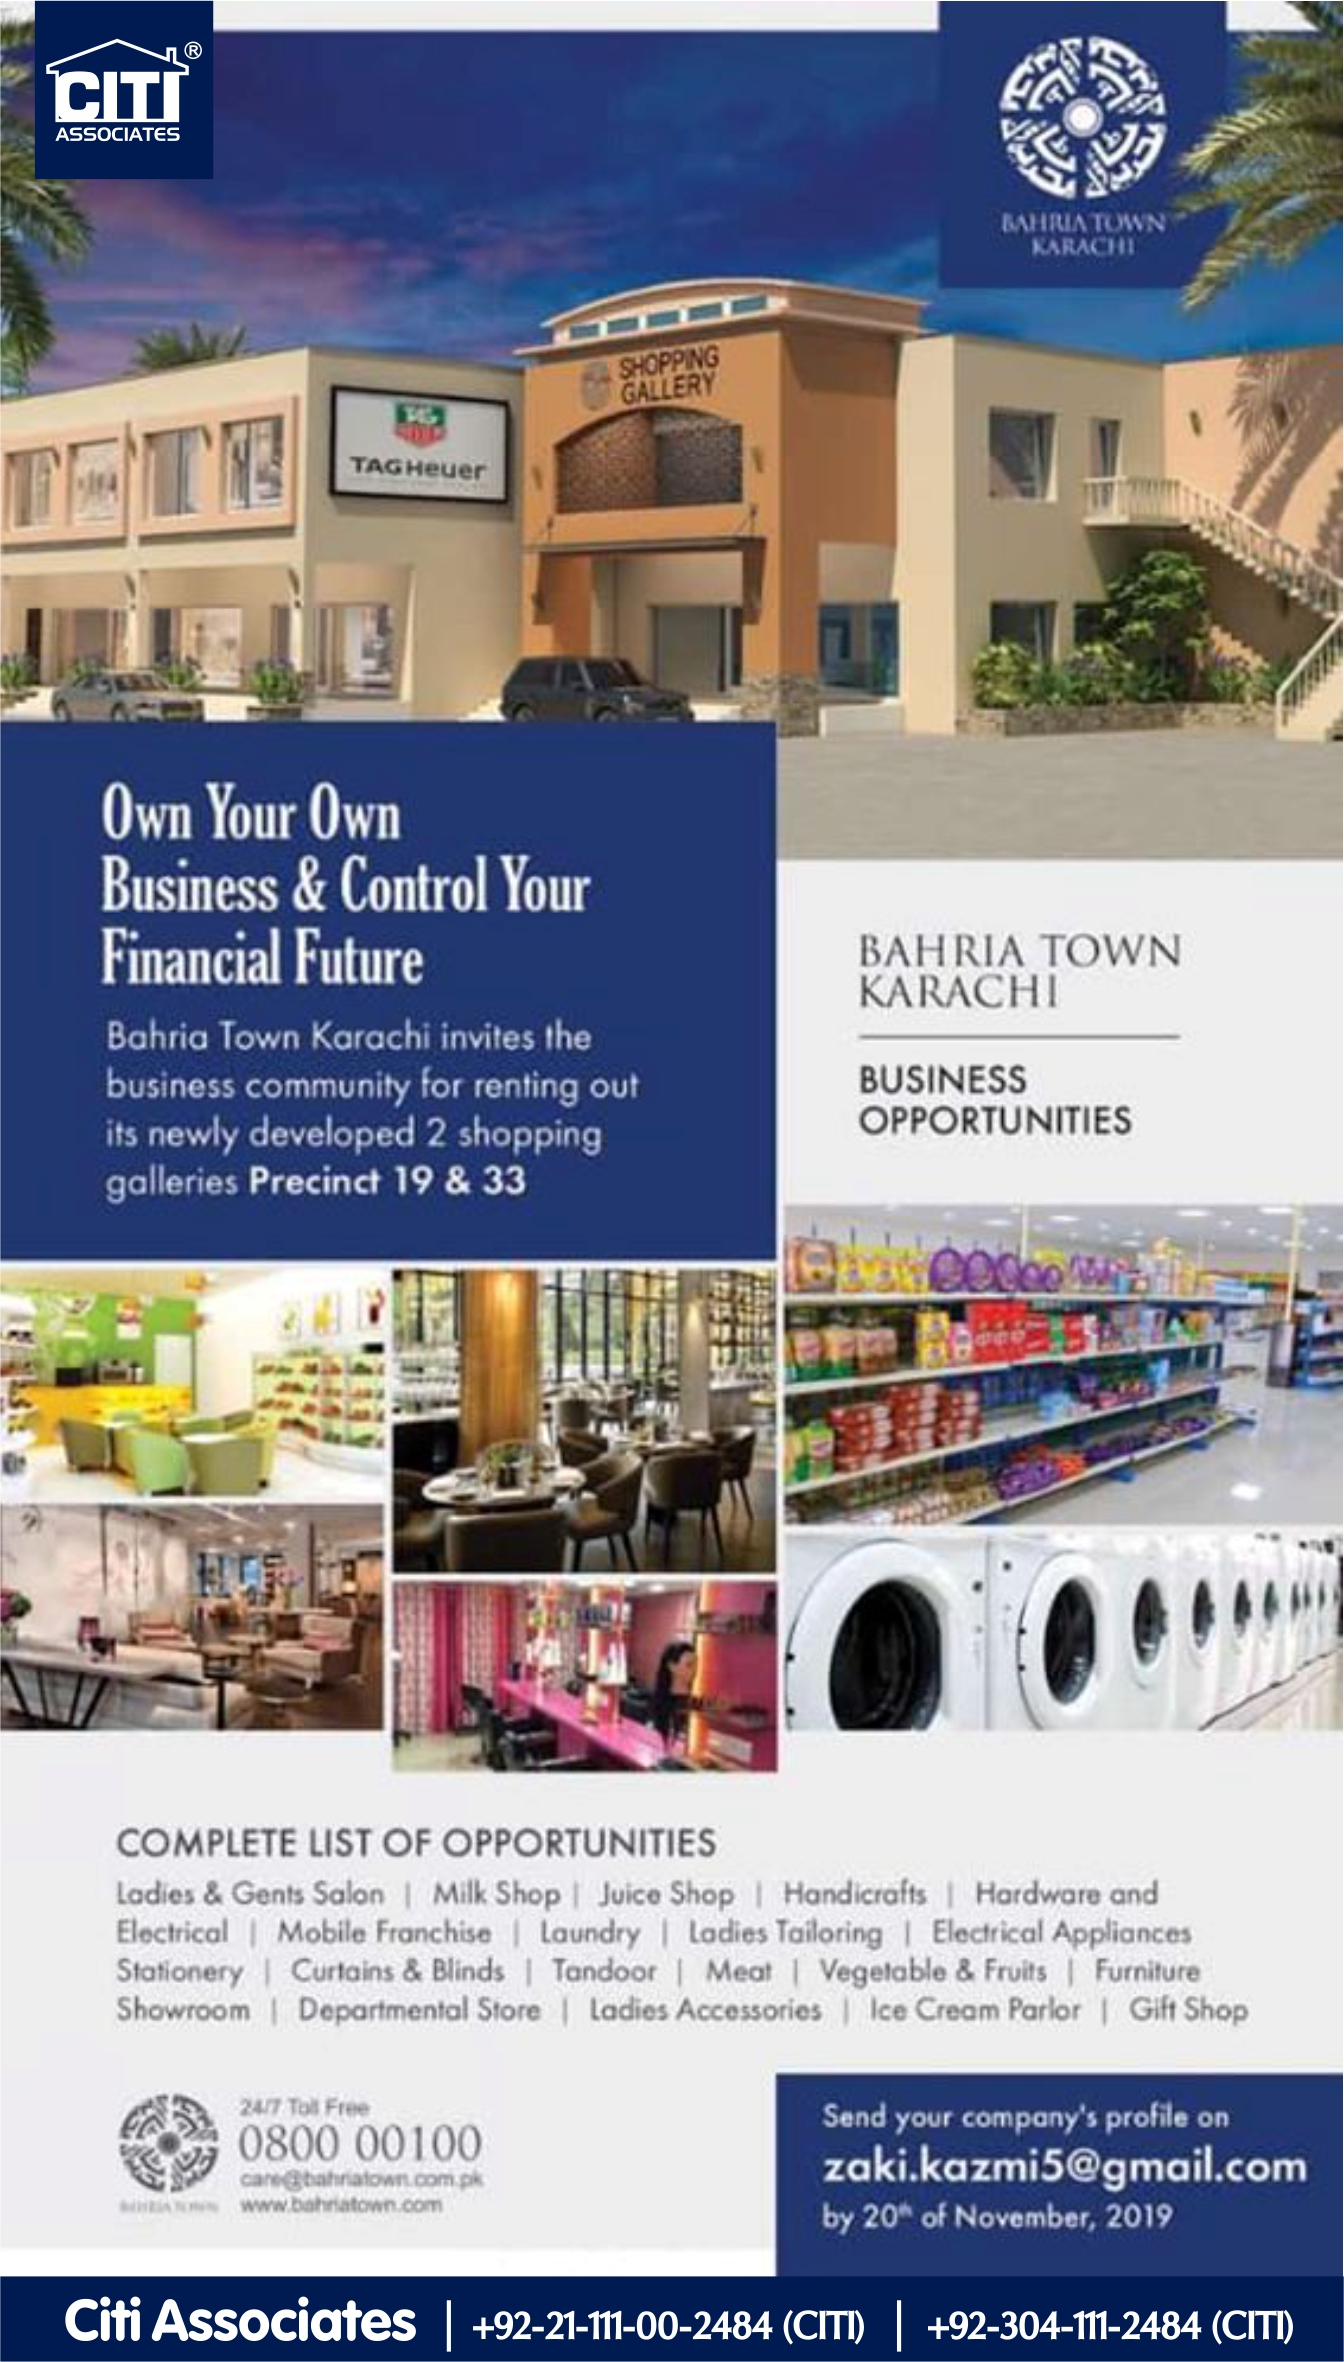 Own your Own Business | Business Opportunities | Bahria Town Karachi